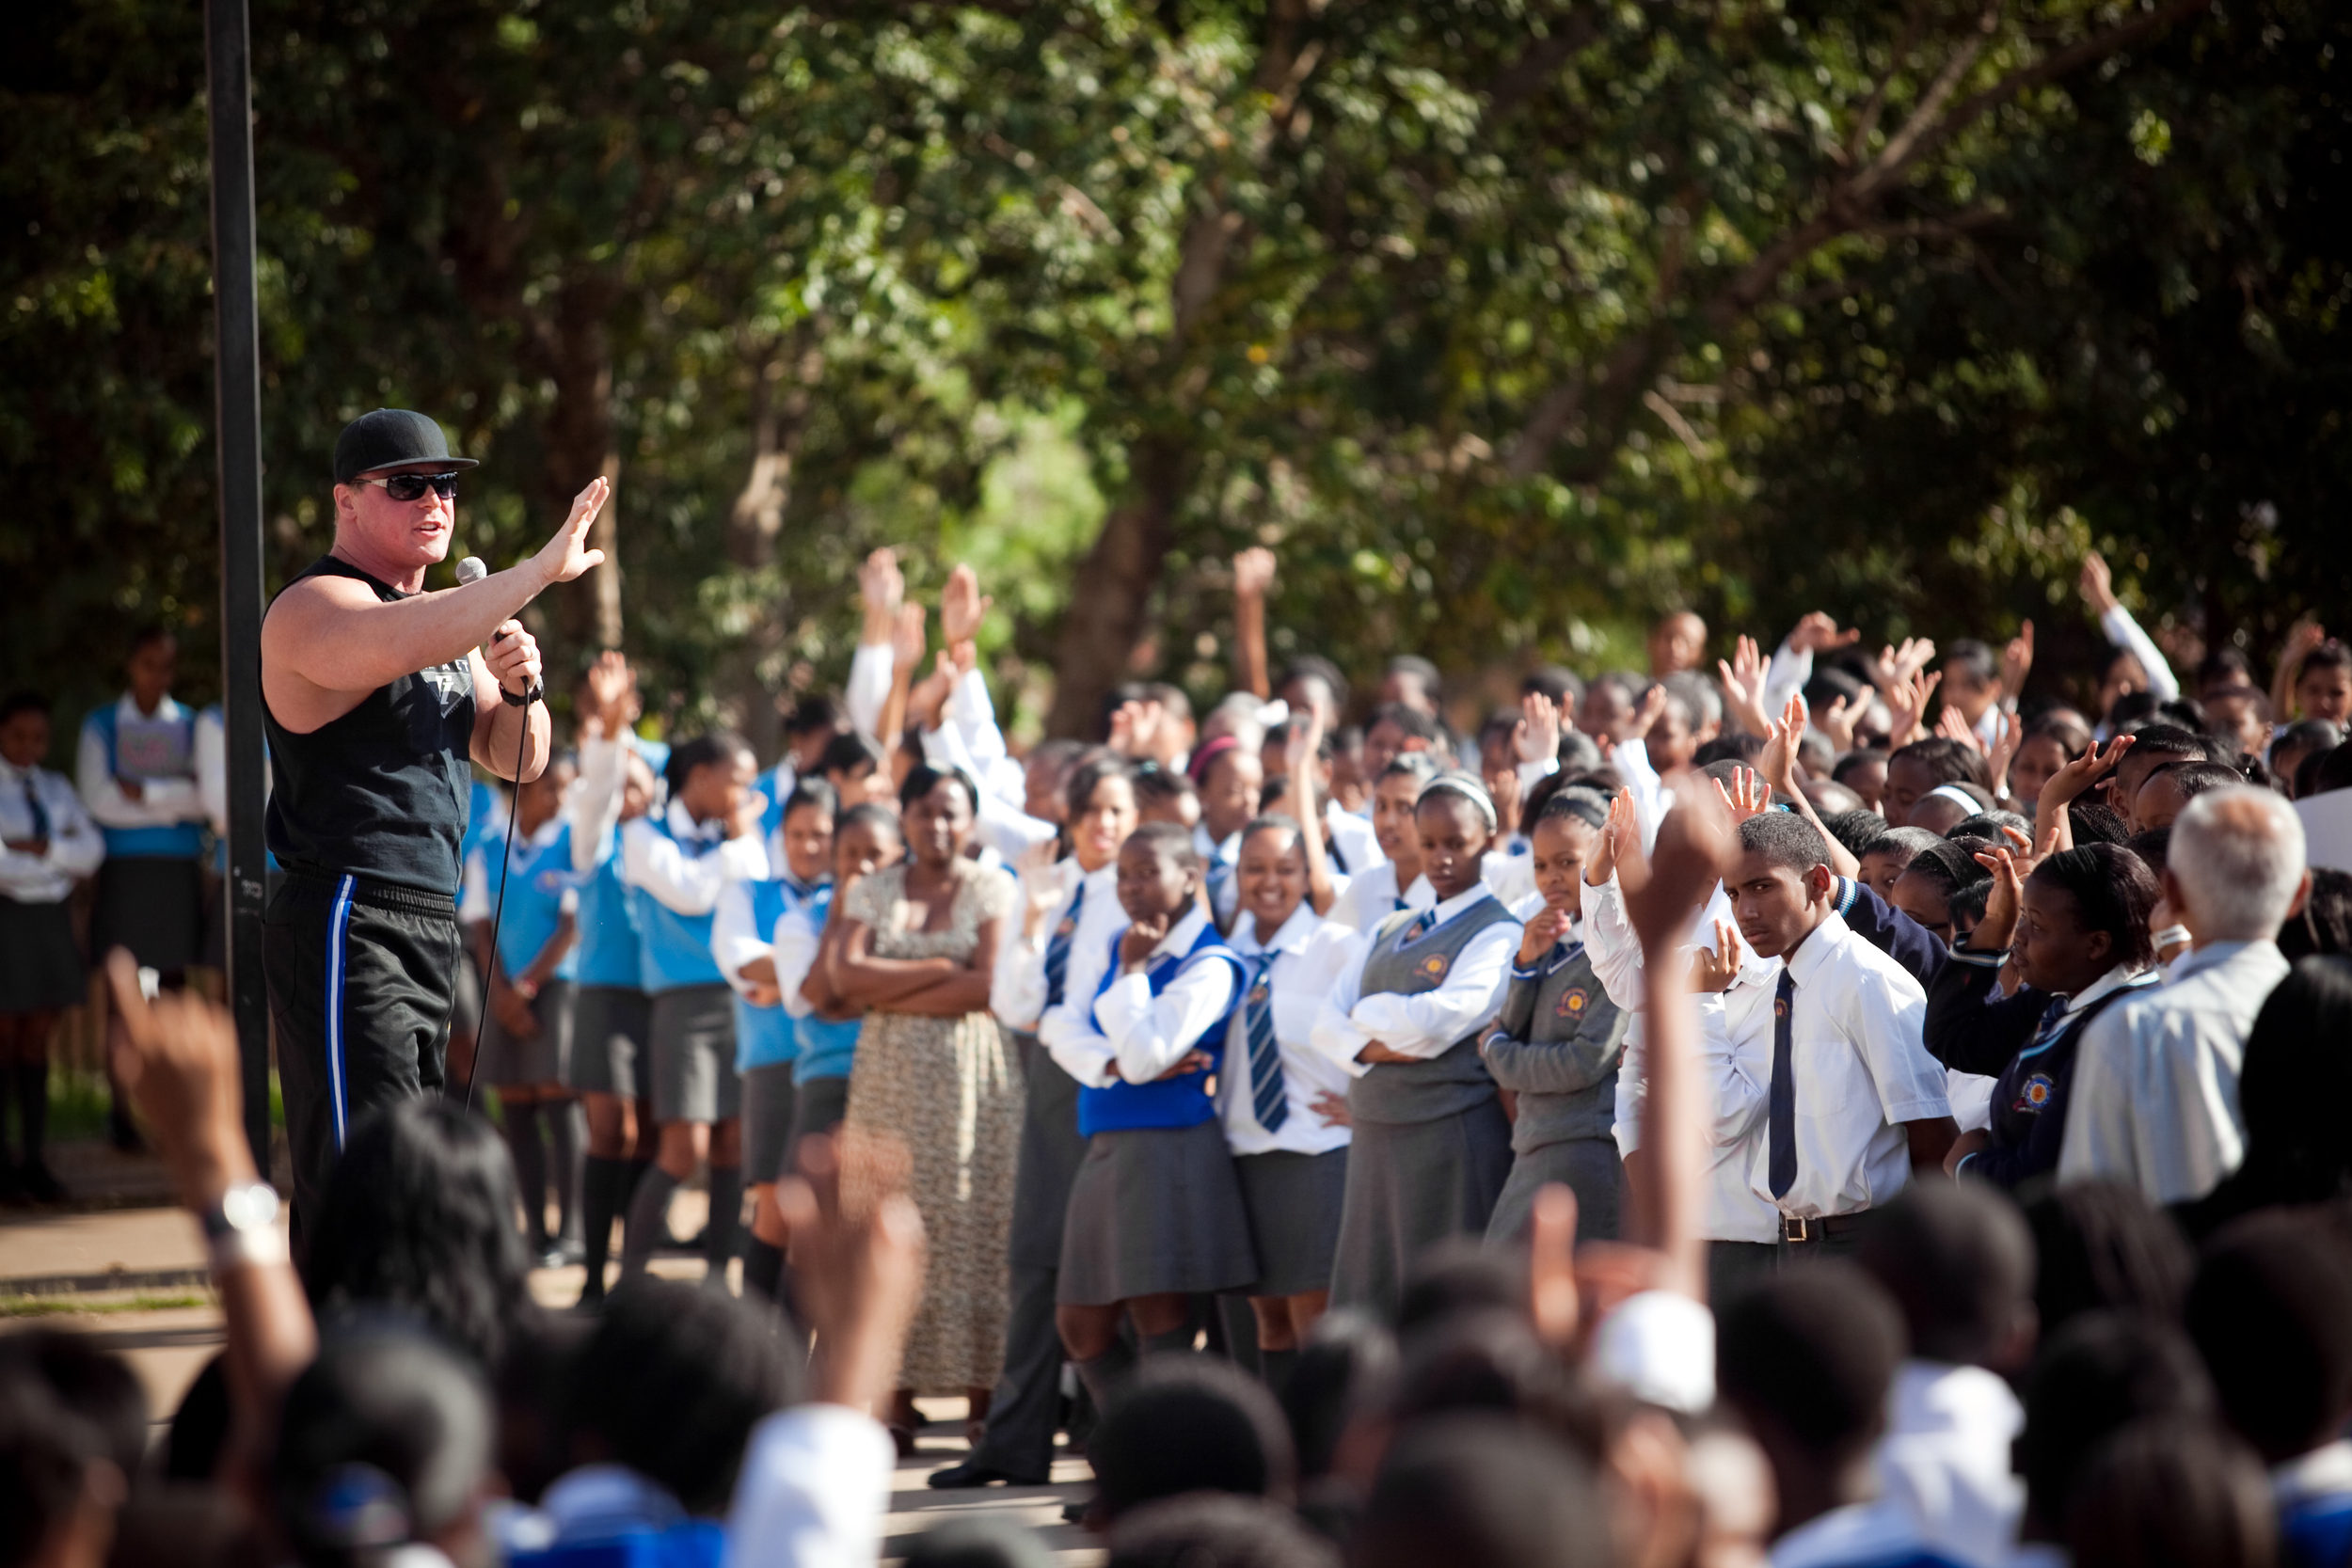 School Assembly in South Africa